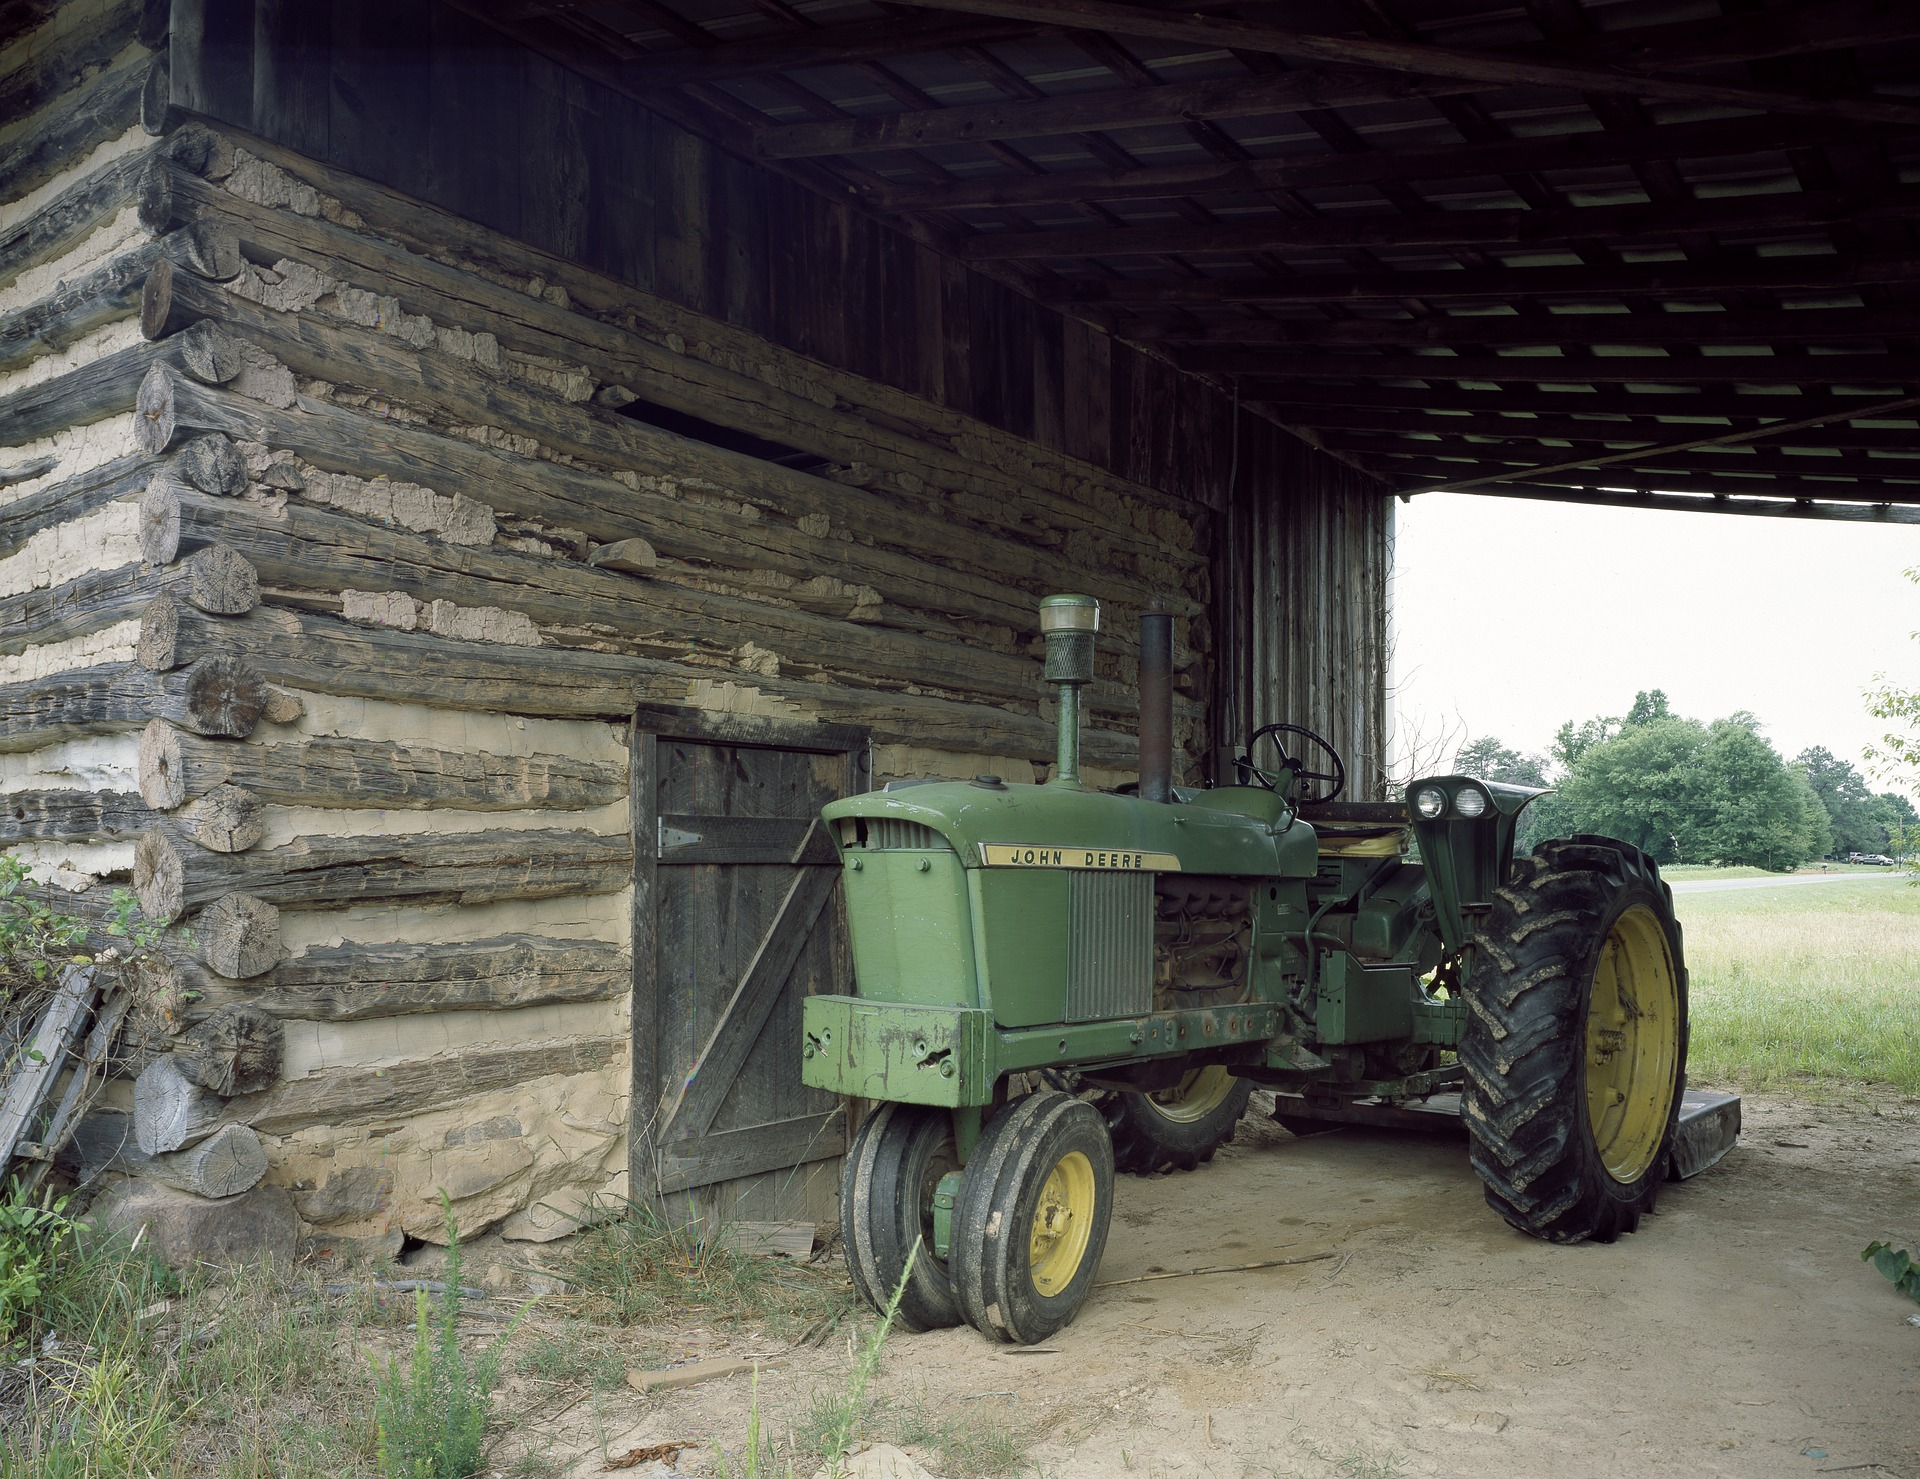 Old Tractor, Farm, Farming, Old, Tractor, HQ Photo